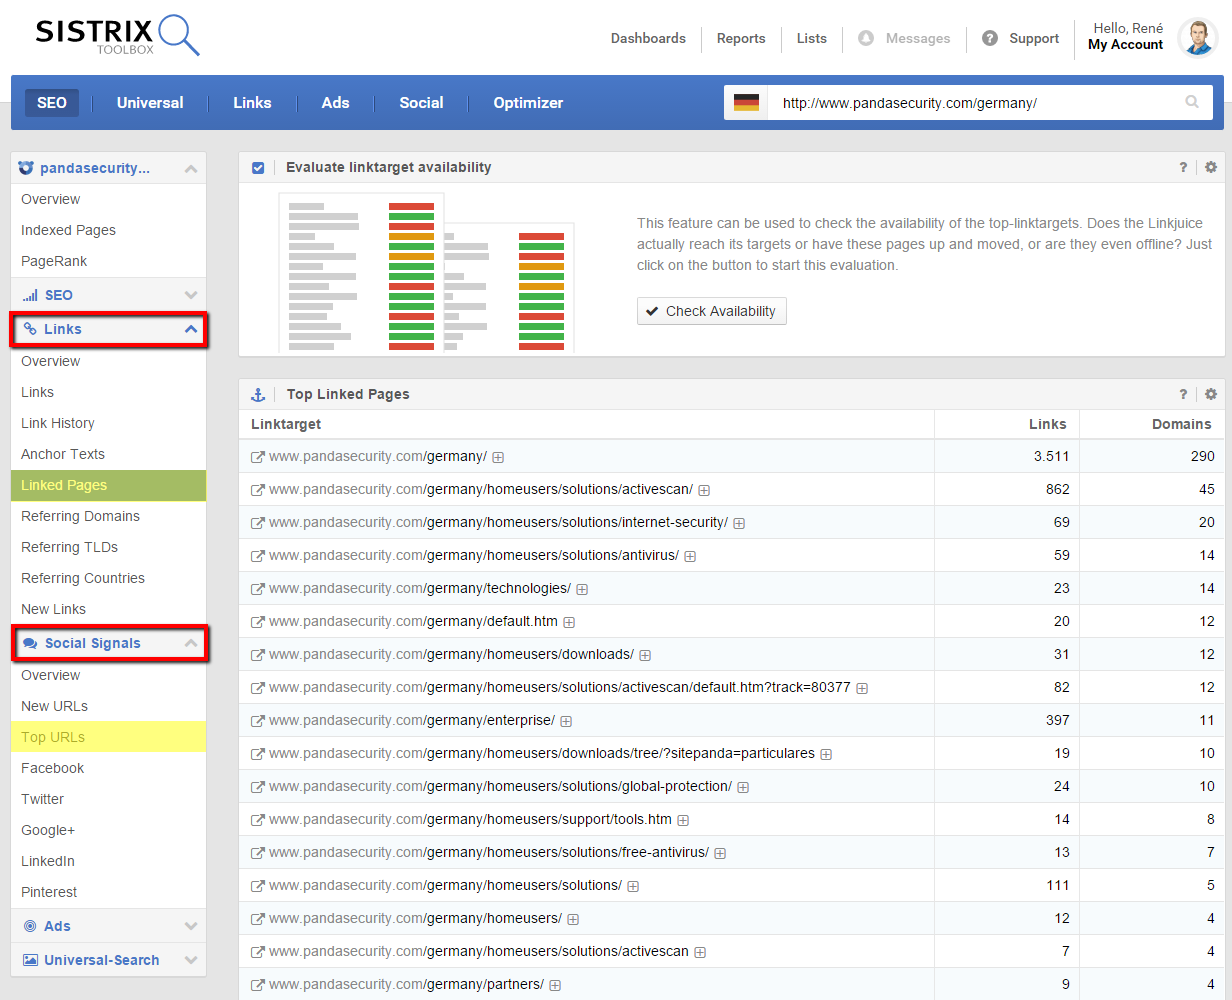 SISTRIX Toolbox shows URLs with important backlinks und numerous social mentions